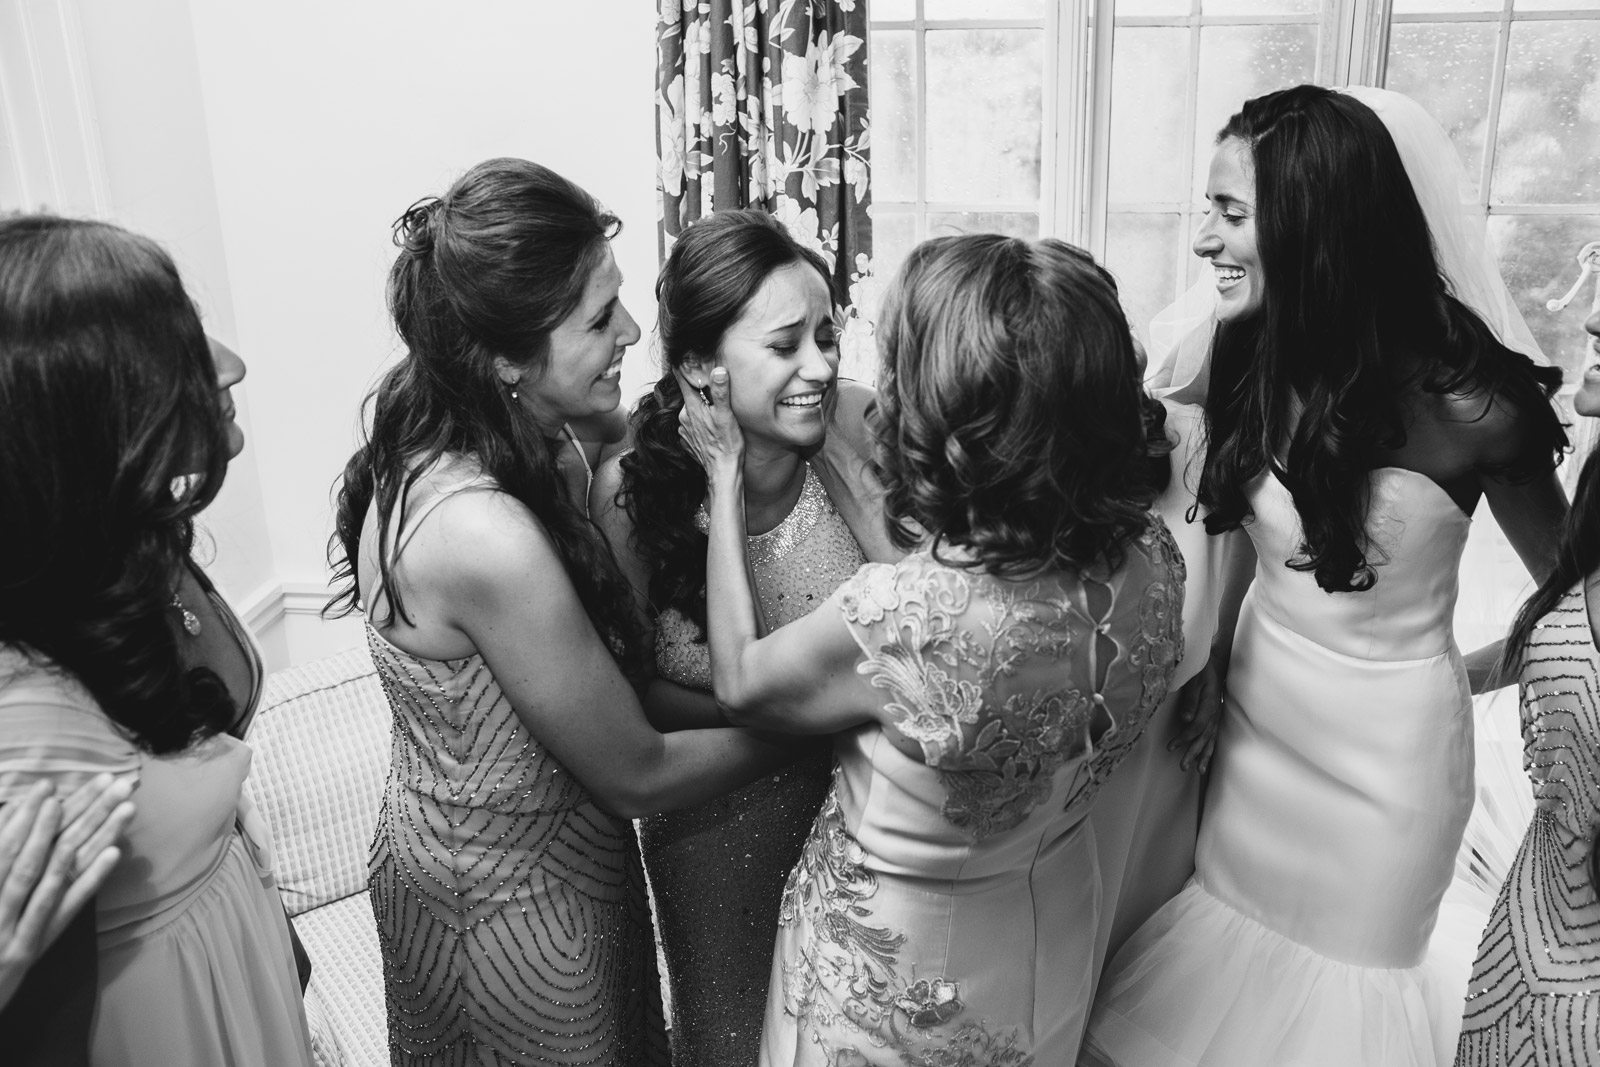 emotional moment between bride and her mother captured the wedding at Armour House